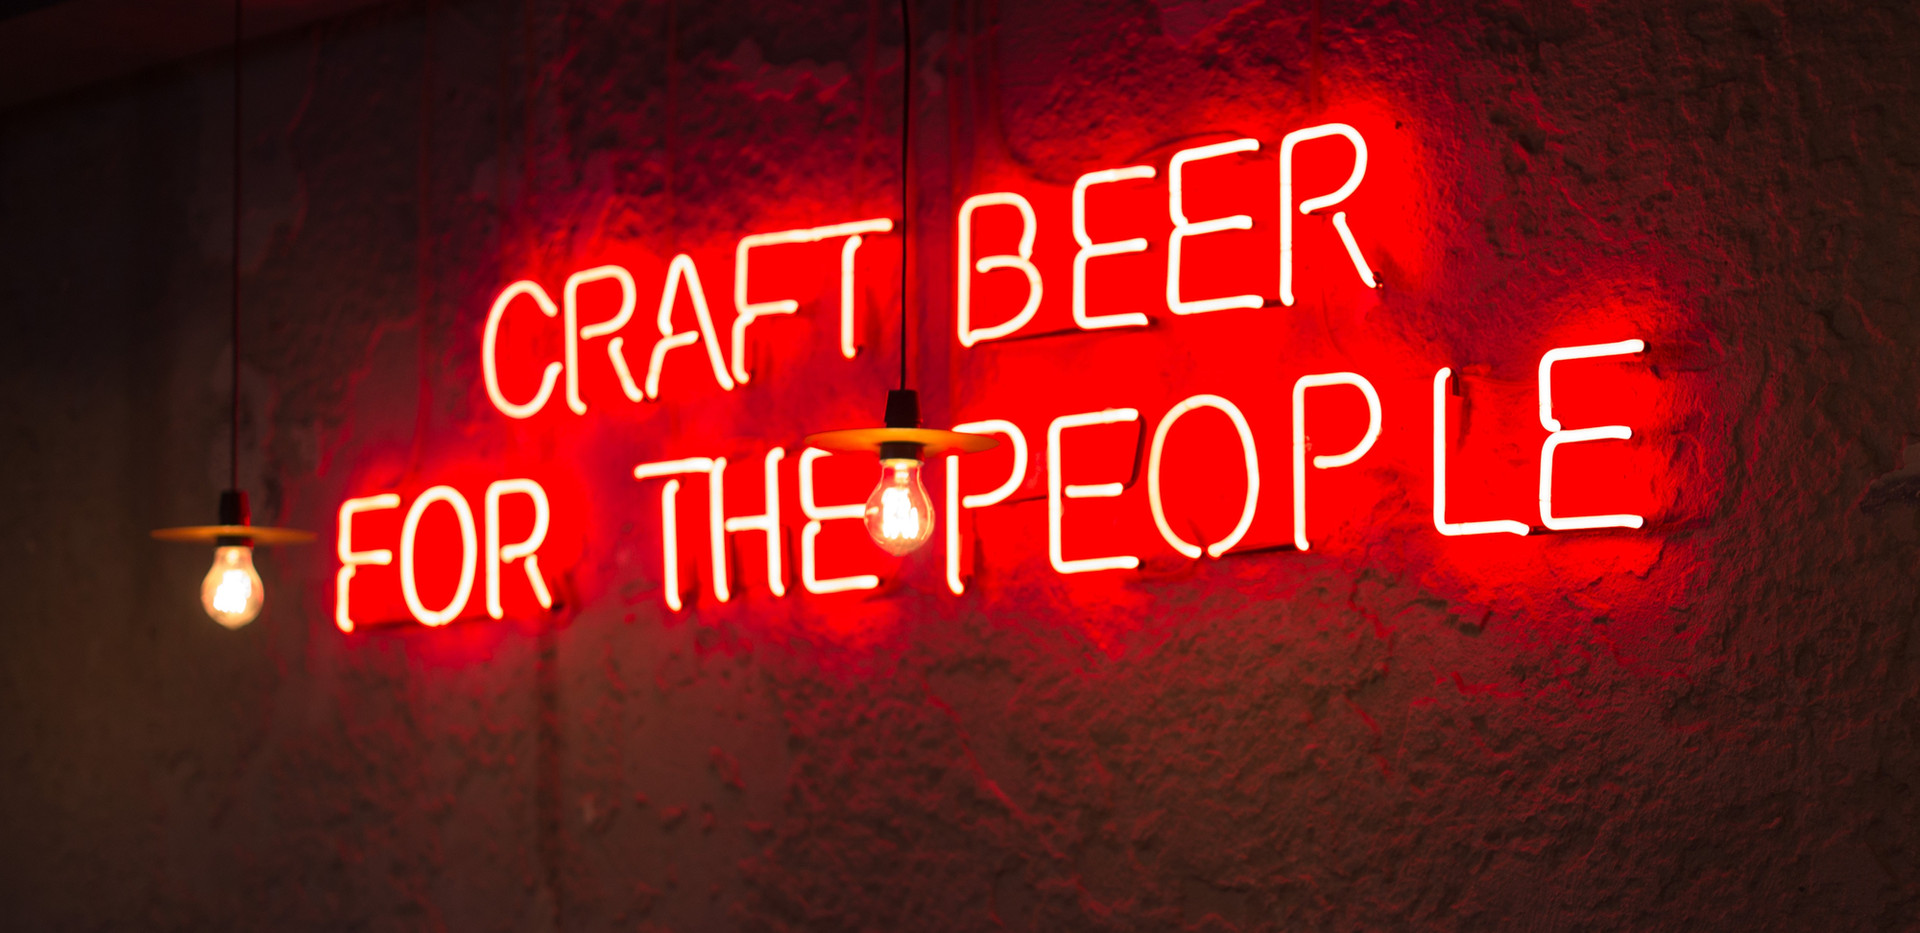 LED Neon Sign in Bar